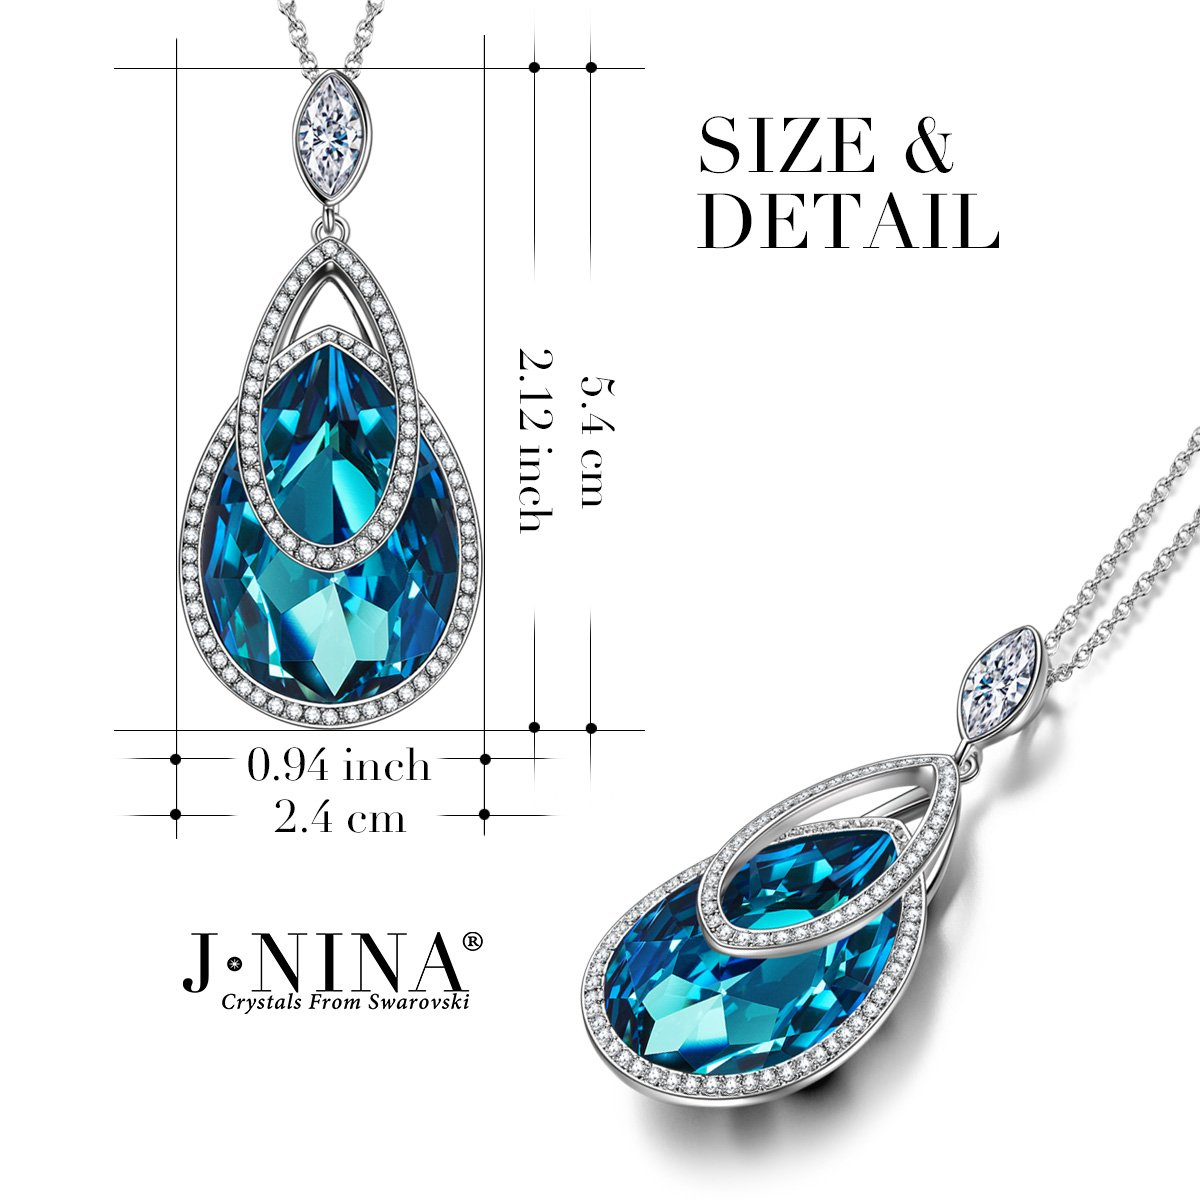 Amazon.com: J.NINA Swarovski Crystals Necklace -Christmas Jewelry Gifts for  Wife- Sapphire Dangle Pendant, Ideal Gift for Women: Jewelry